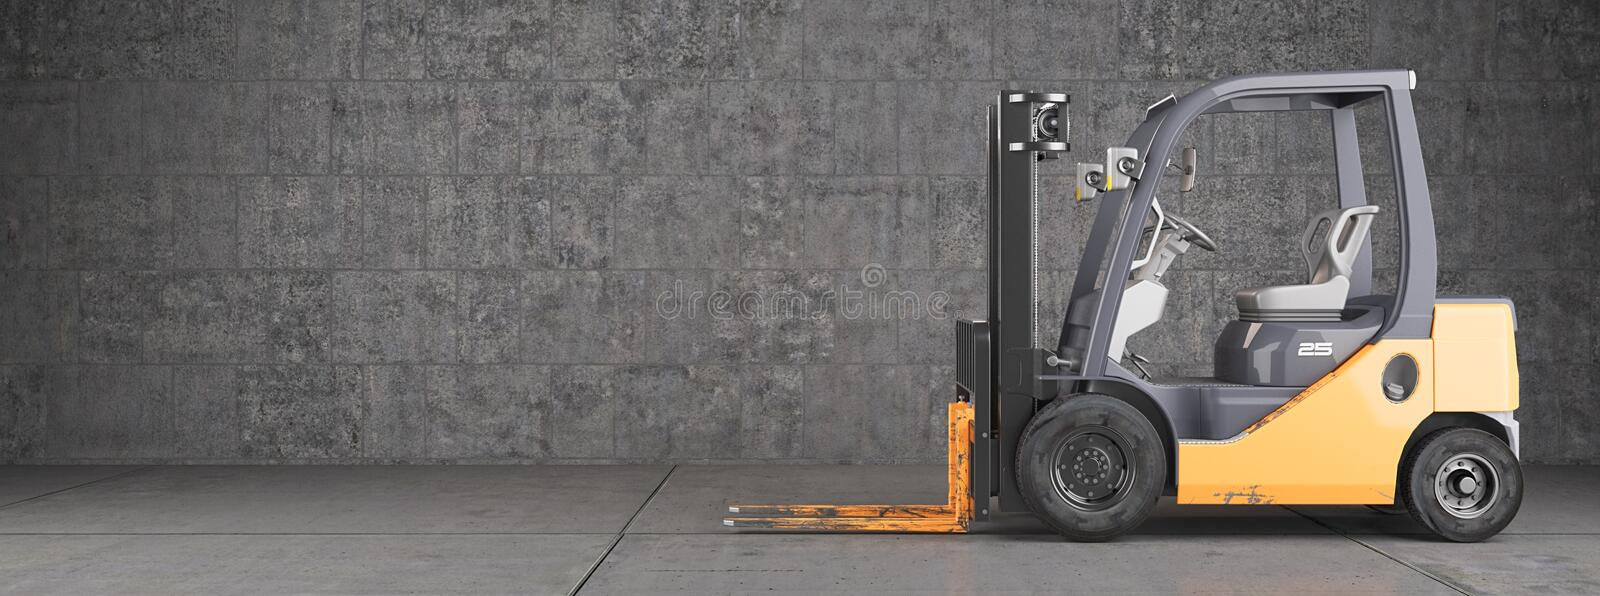 Forklift truck on industrial dirty wall background stock photography